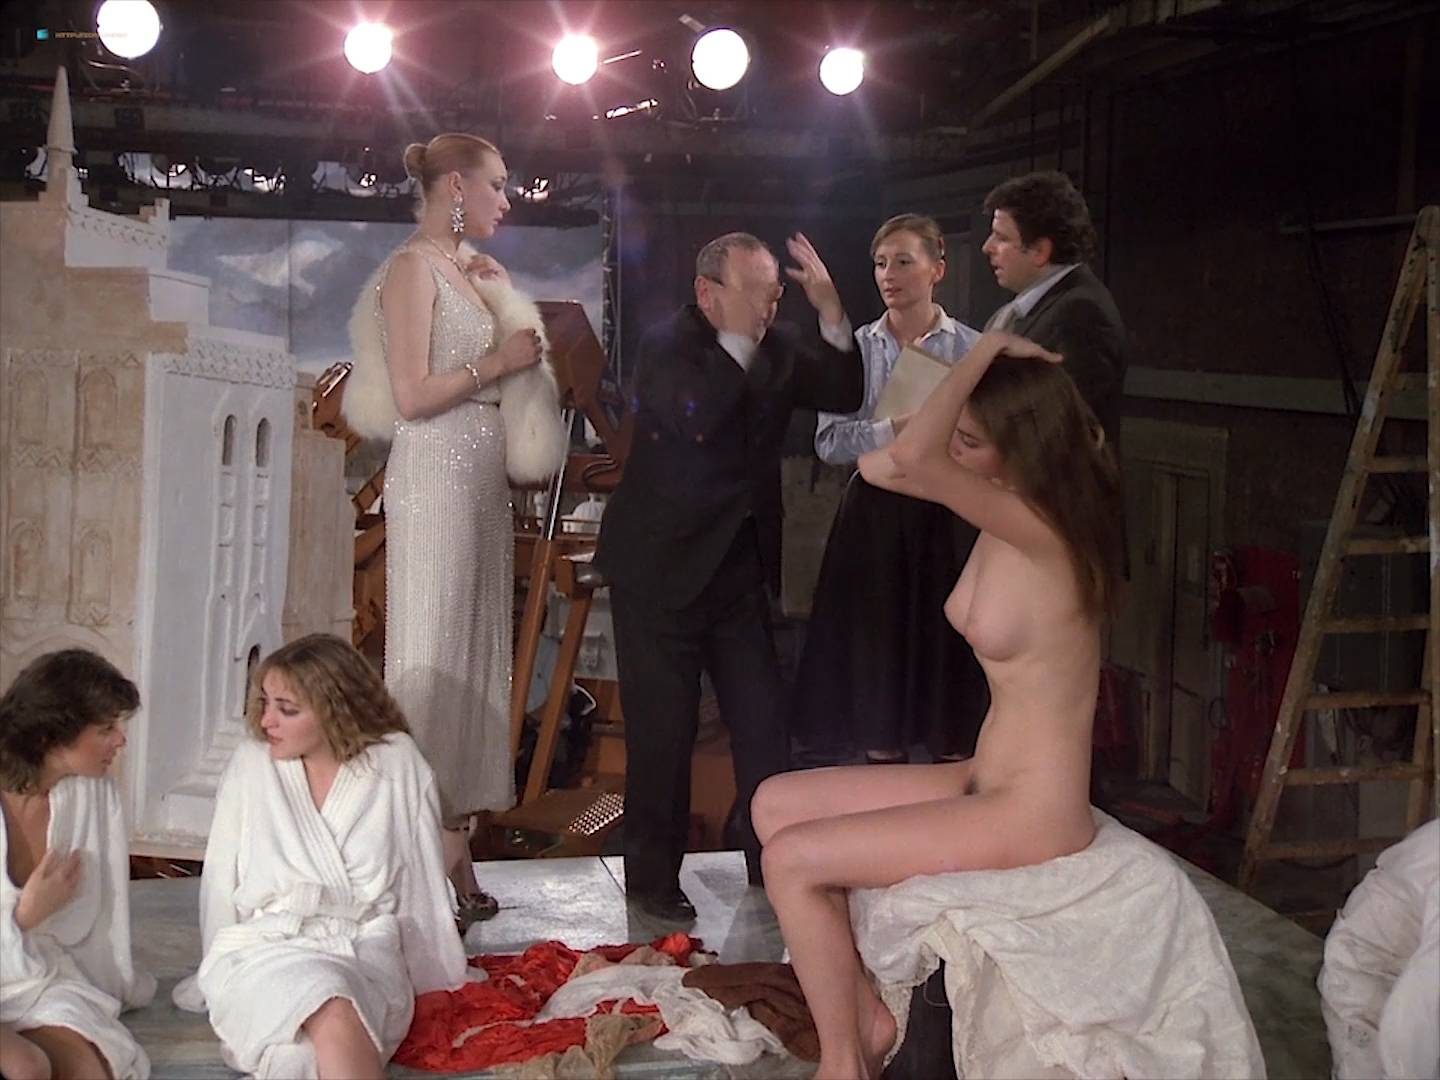 Isabelle Huppert nude Myriem Roussel nude full frontal others nude too - Passion (FR-1982) HD 1080p BluRay (14)